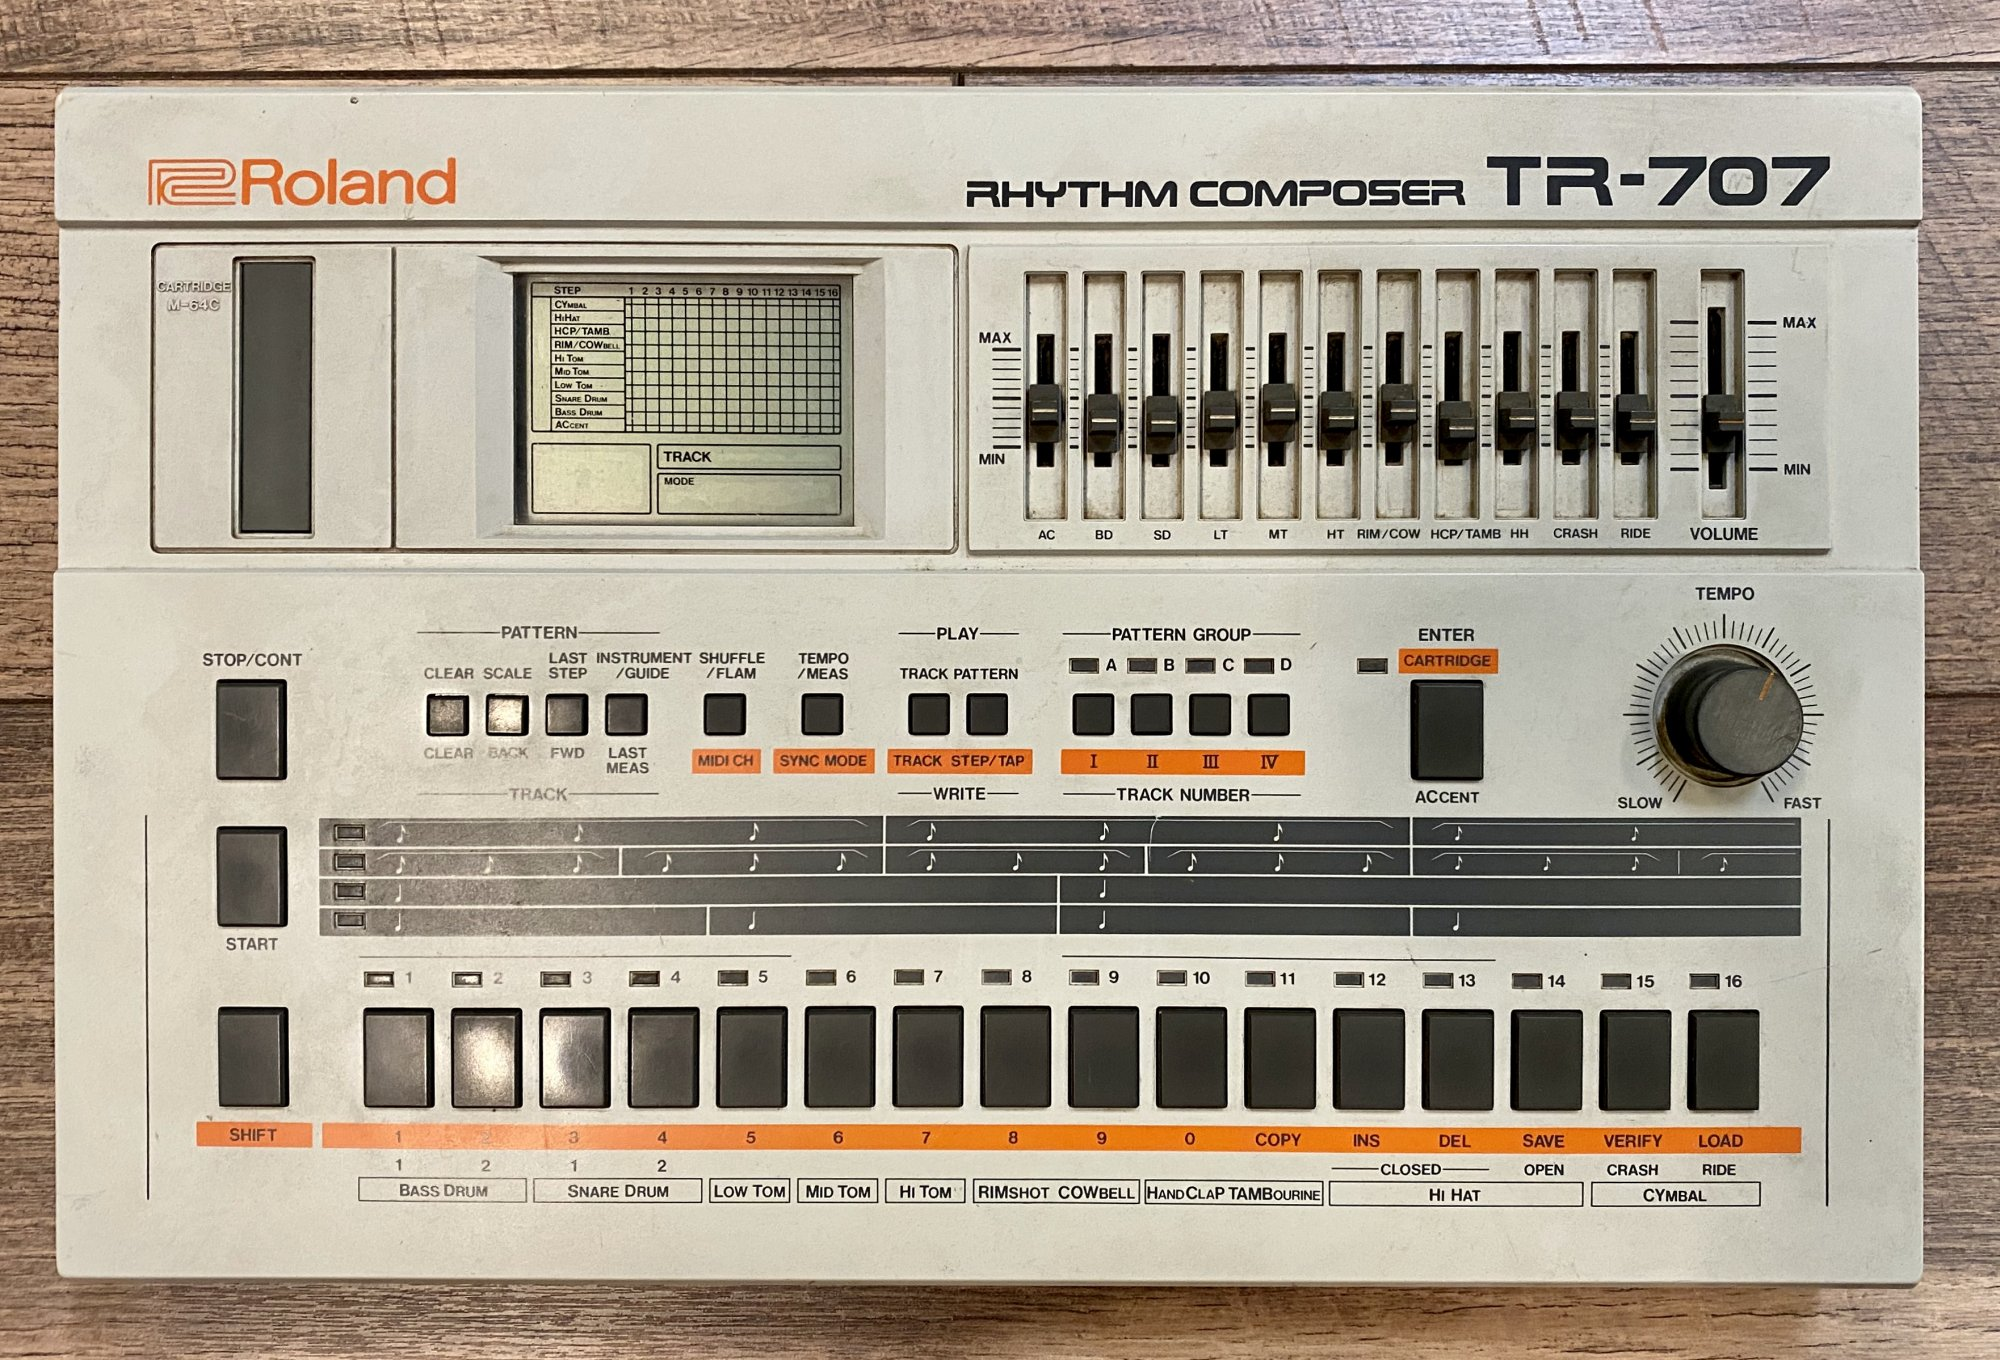 USED - ROLAND TR-707 W/PS